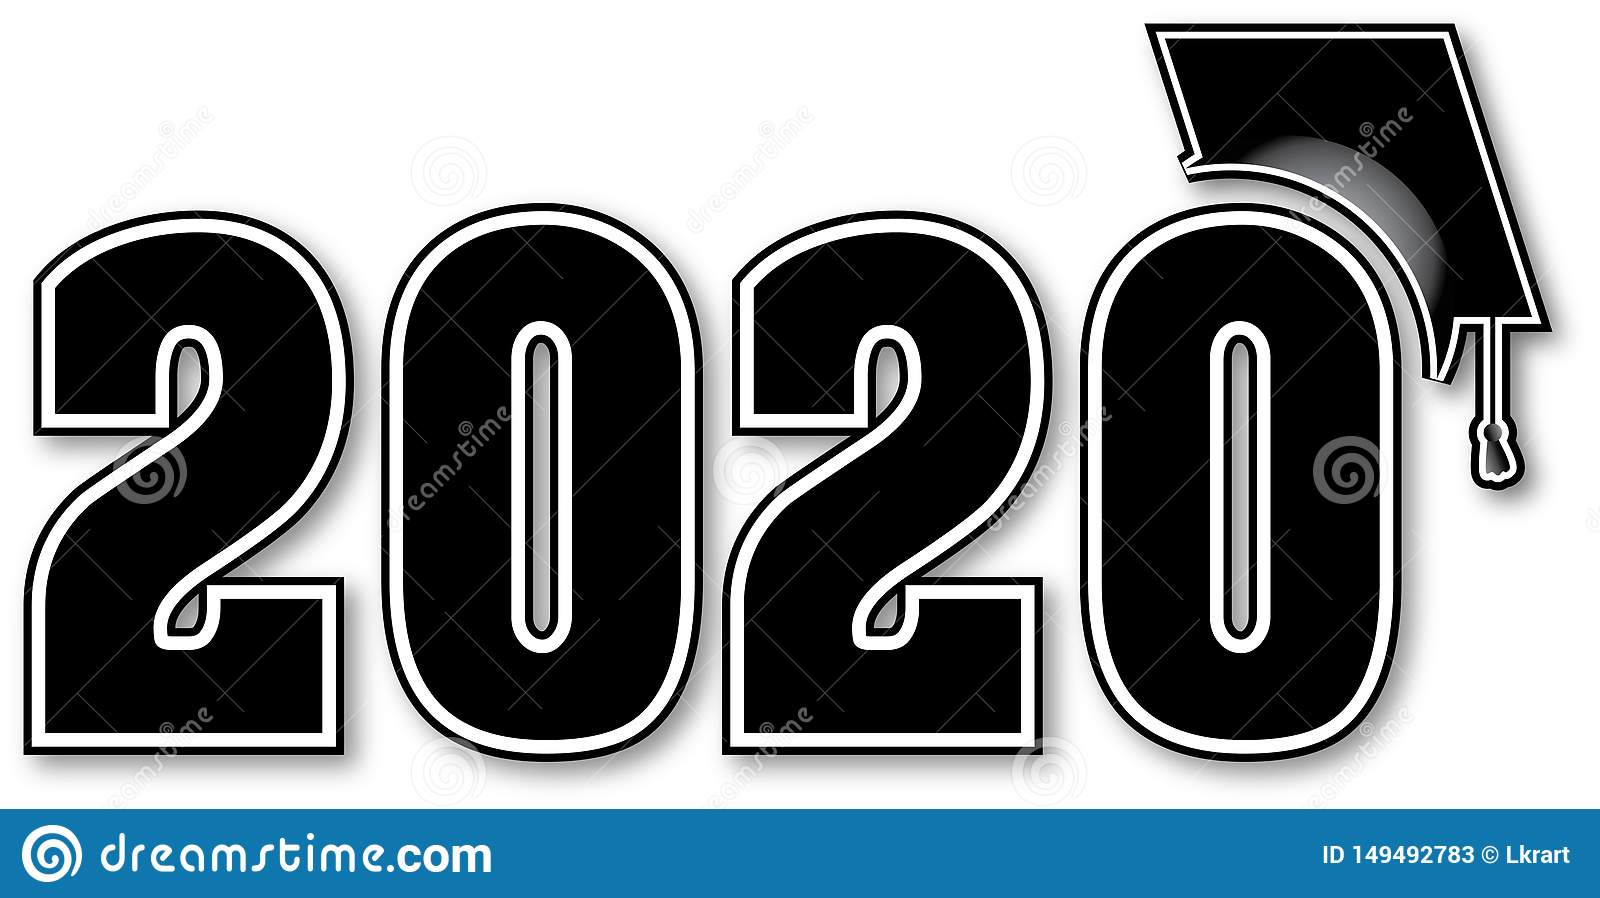 2020 Graduation Images.Black And White Class Of 2020 Stock Illustration